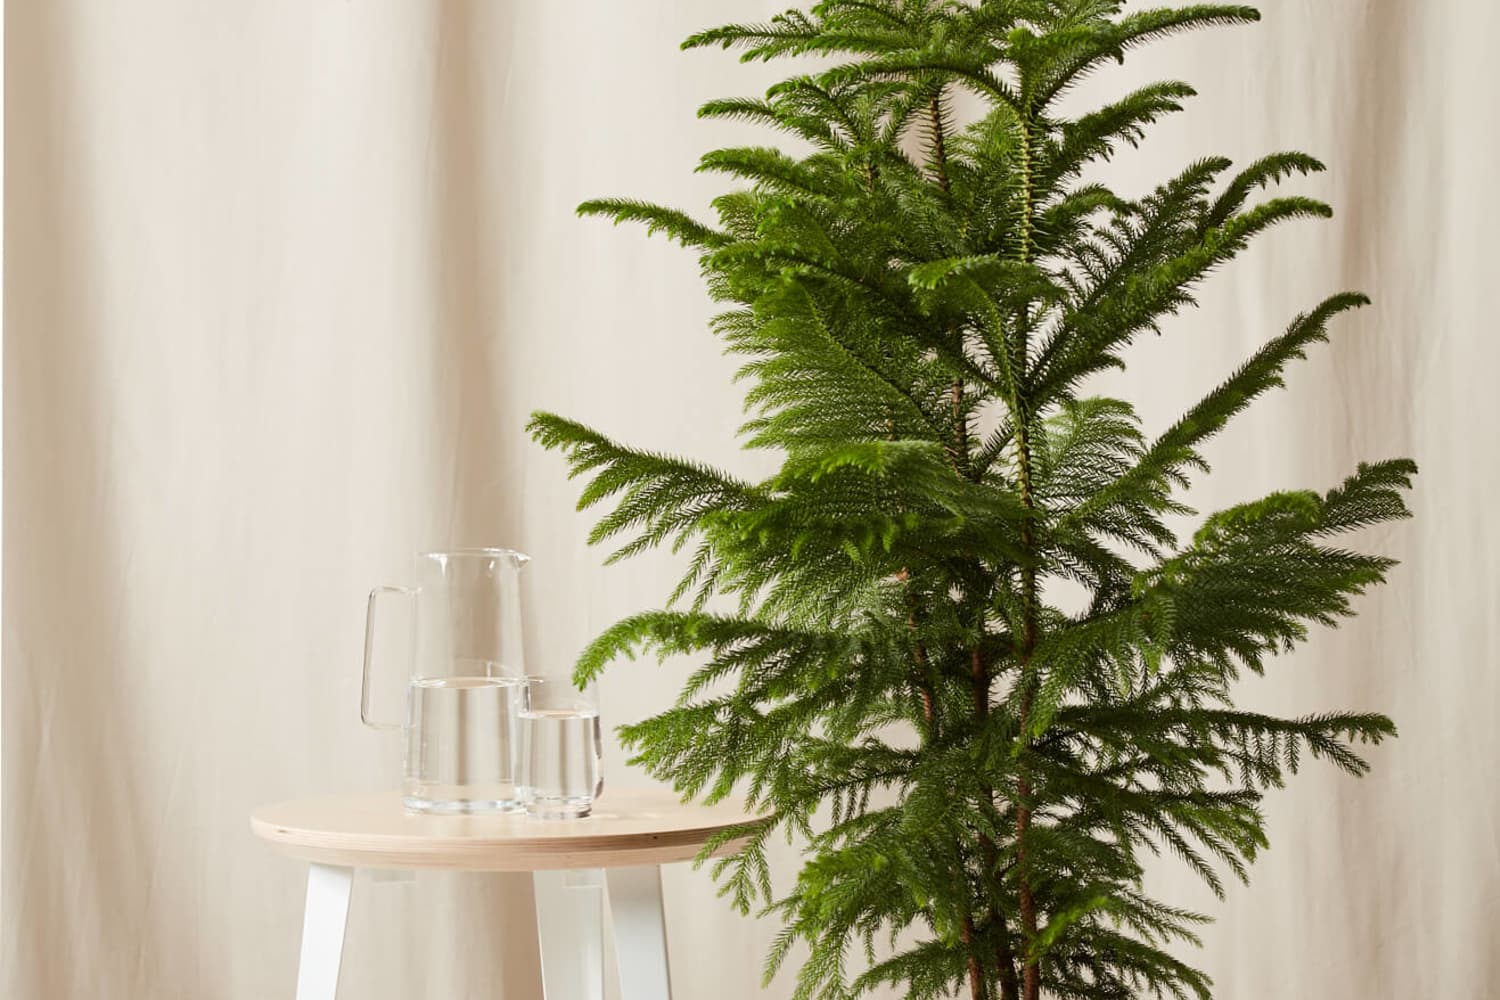 You Can Keep Your Christmas Tree Year-Round With These Potted Evergreens